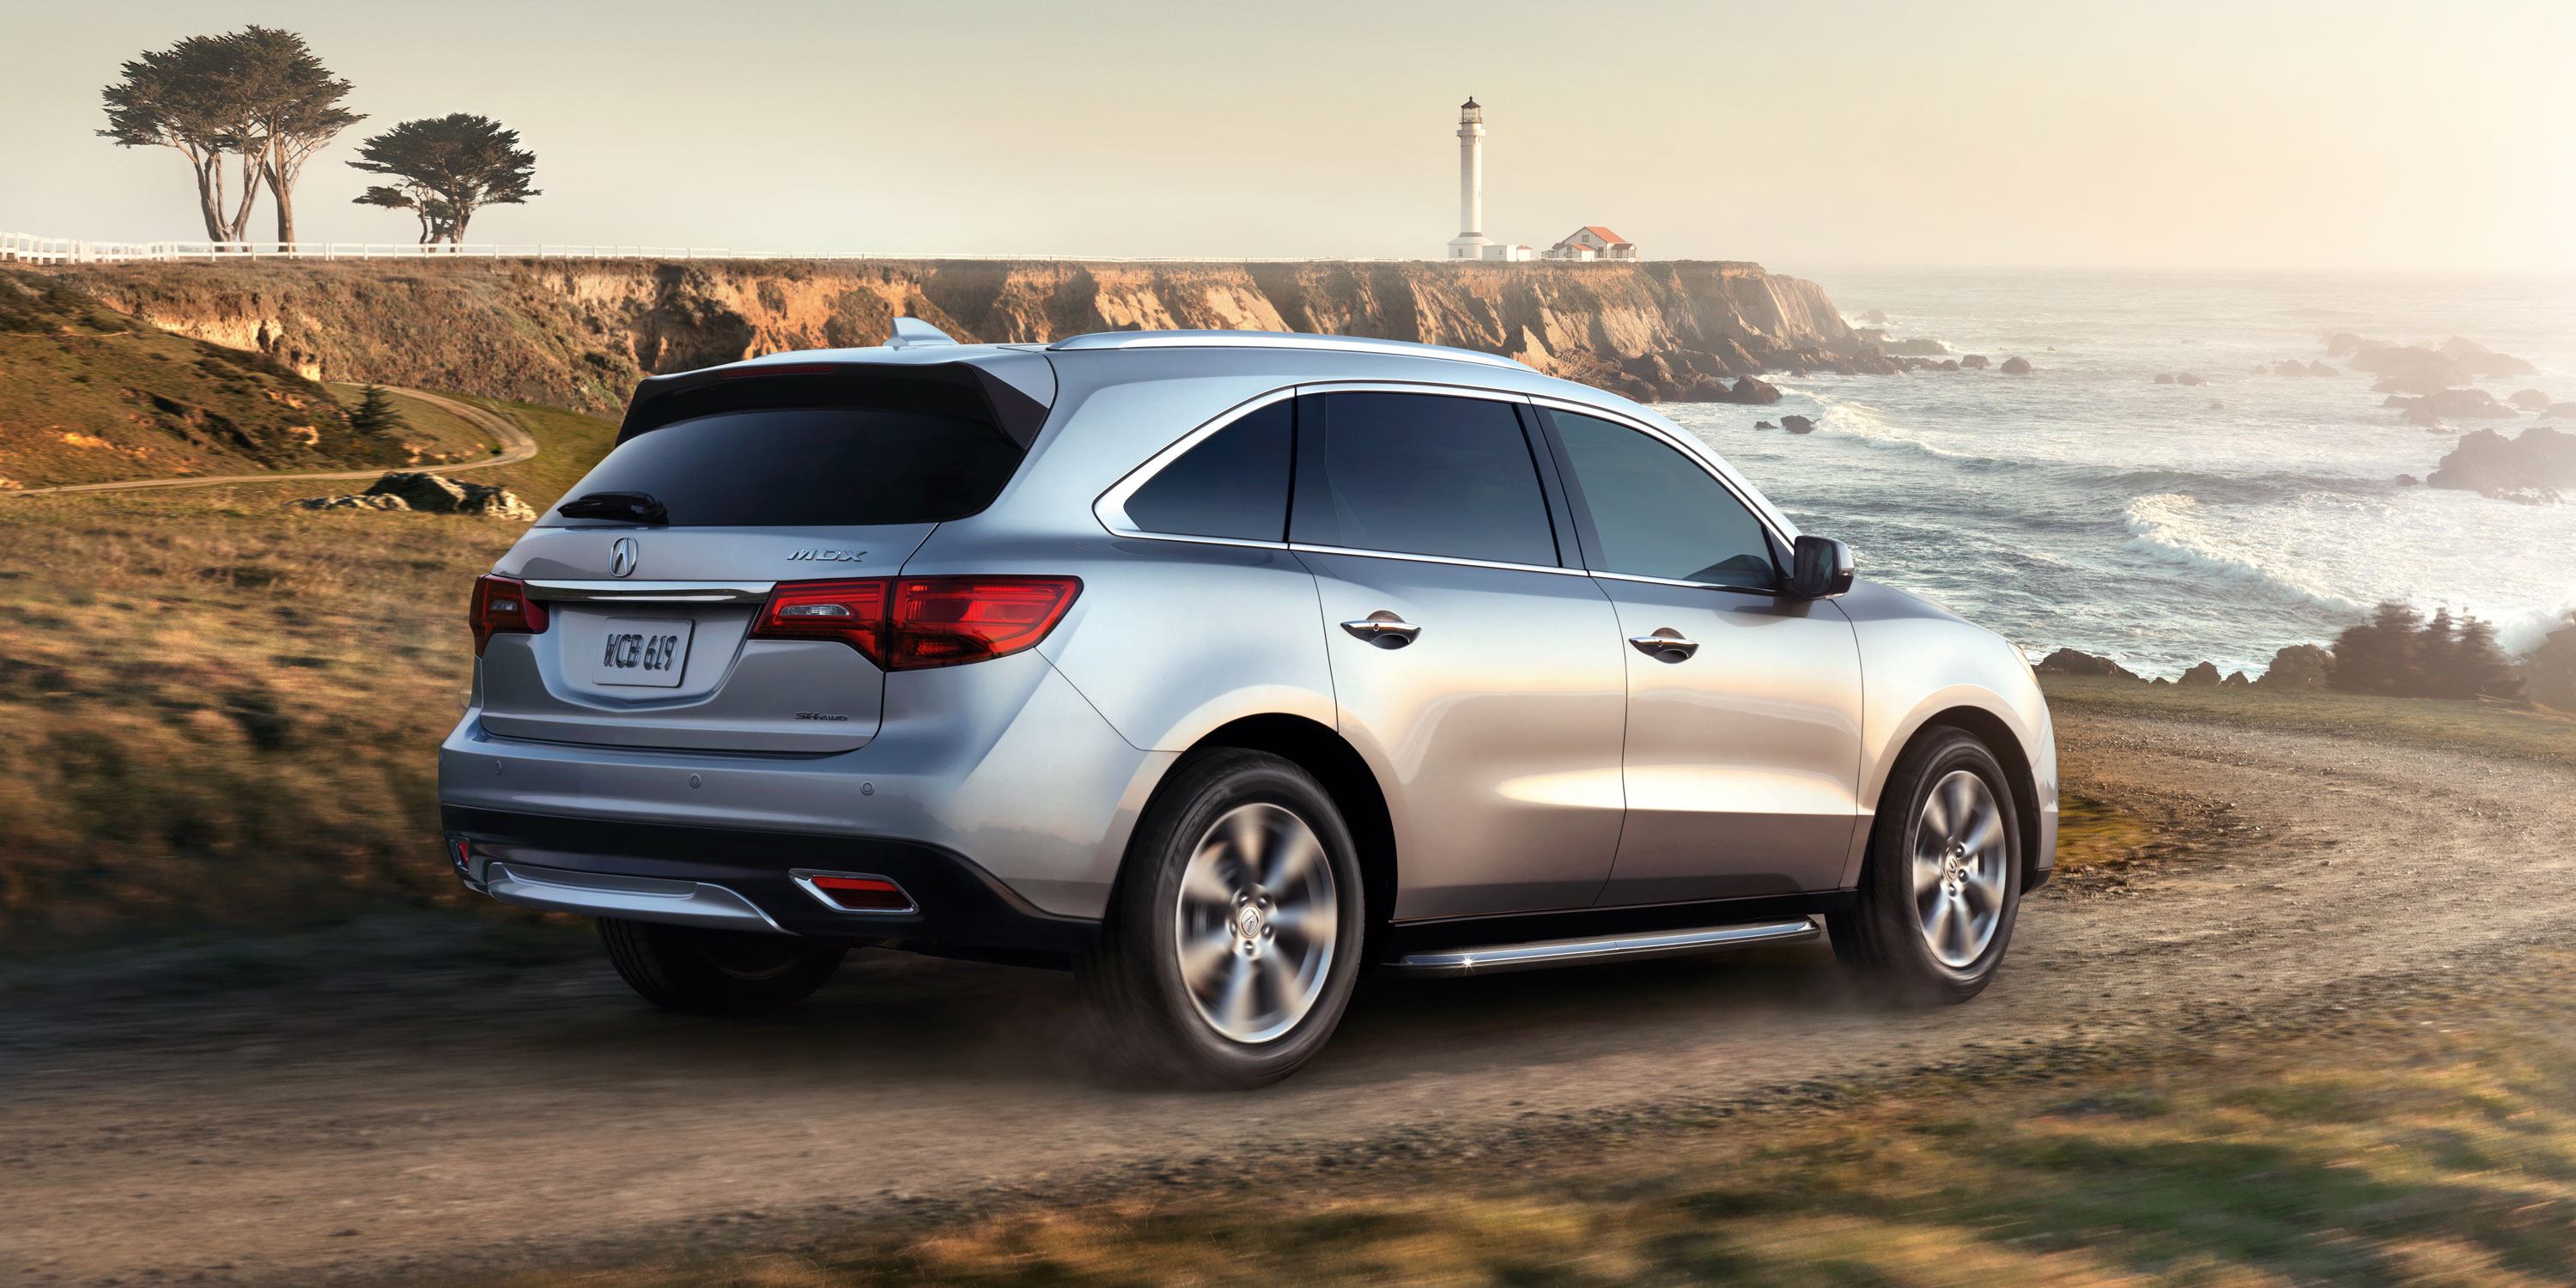 2015-mdx-exterior-sh-awd-with-advance-and-entertainment-packages-and-accessories-in-silver-moon-cliffs-shore-5_hires